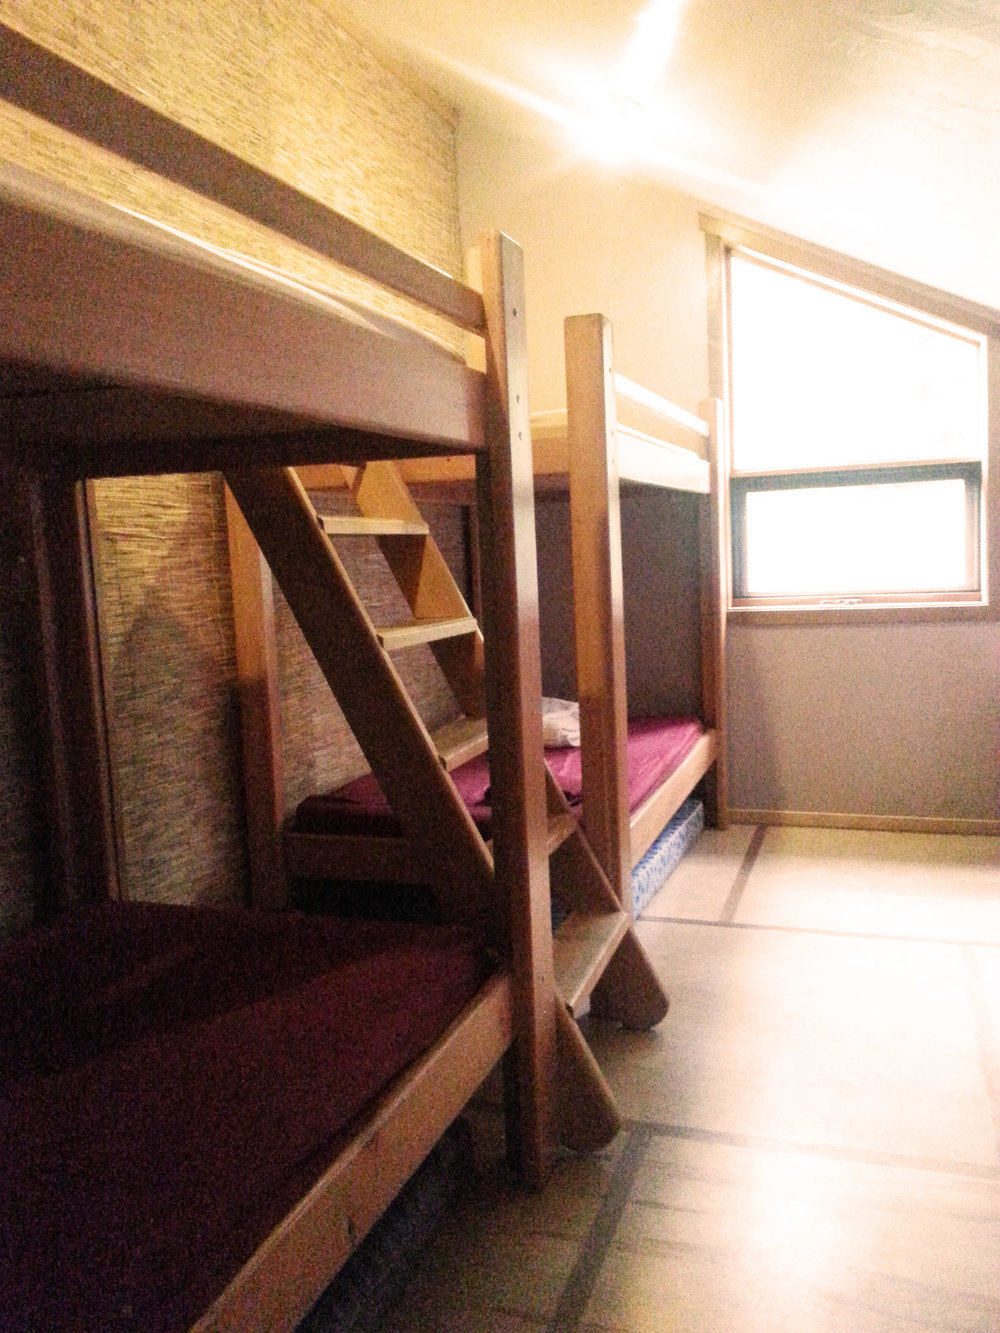 PACKAGE 3 - DORM ROOM W/ SHARED BATH  Features: Forest Views, Single Beds, Shared Bath, 3 Gourmet Meals per day, Max 3 people per room   PKG 3 $1699.00 CDN/ Per Person